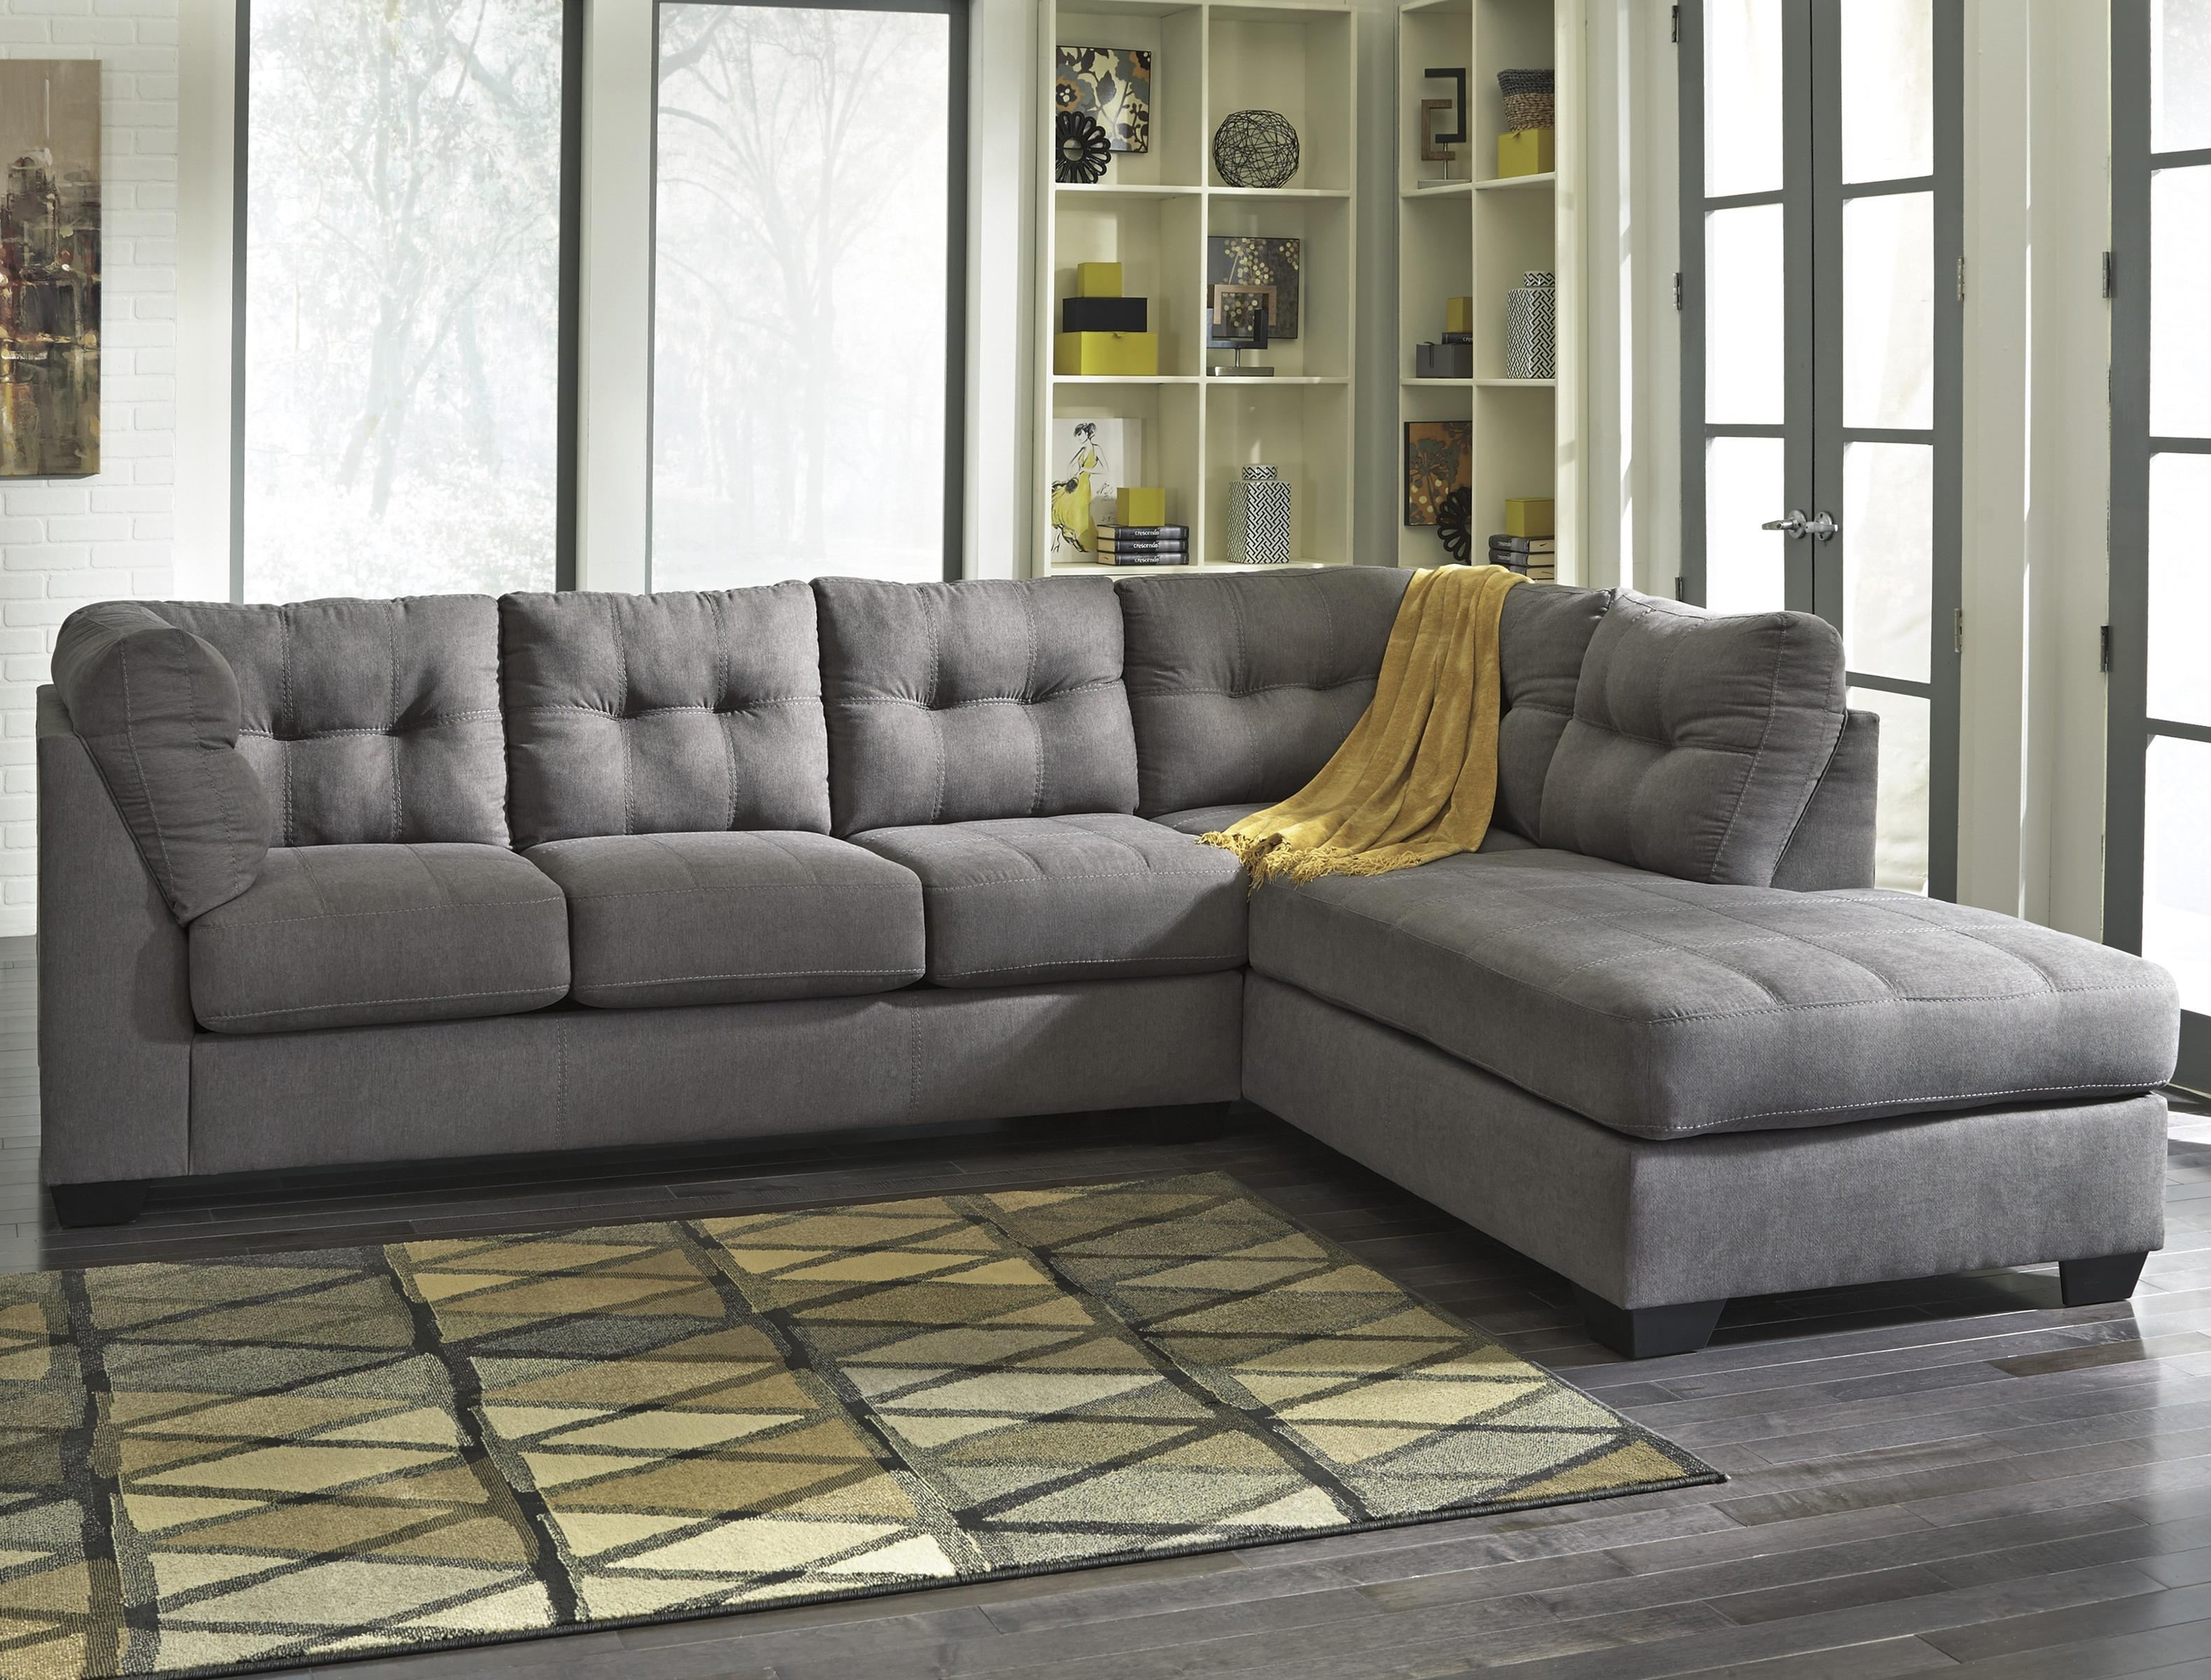 Benchcraft Maier – Charcoal 2 Piece Sectional With Right Chaise In East Bay Sectional Sofas (View 5 of 10)